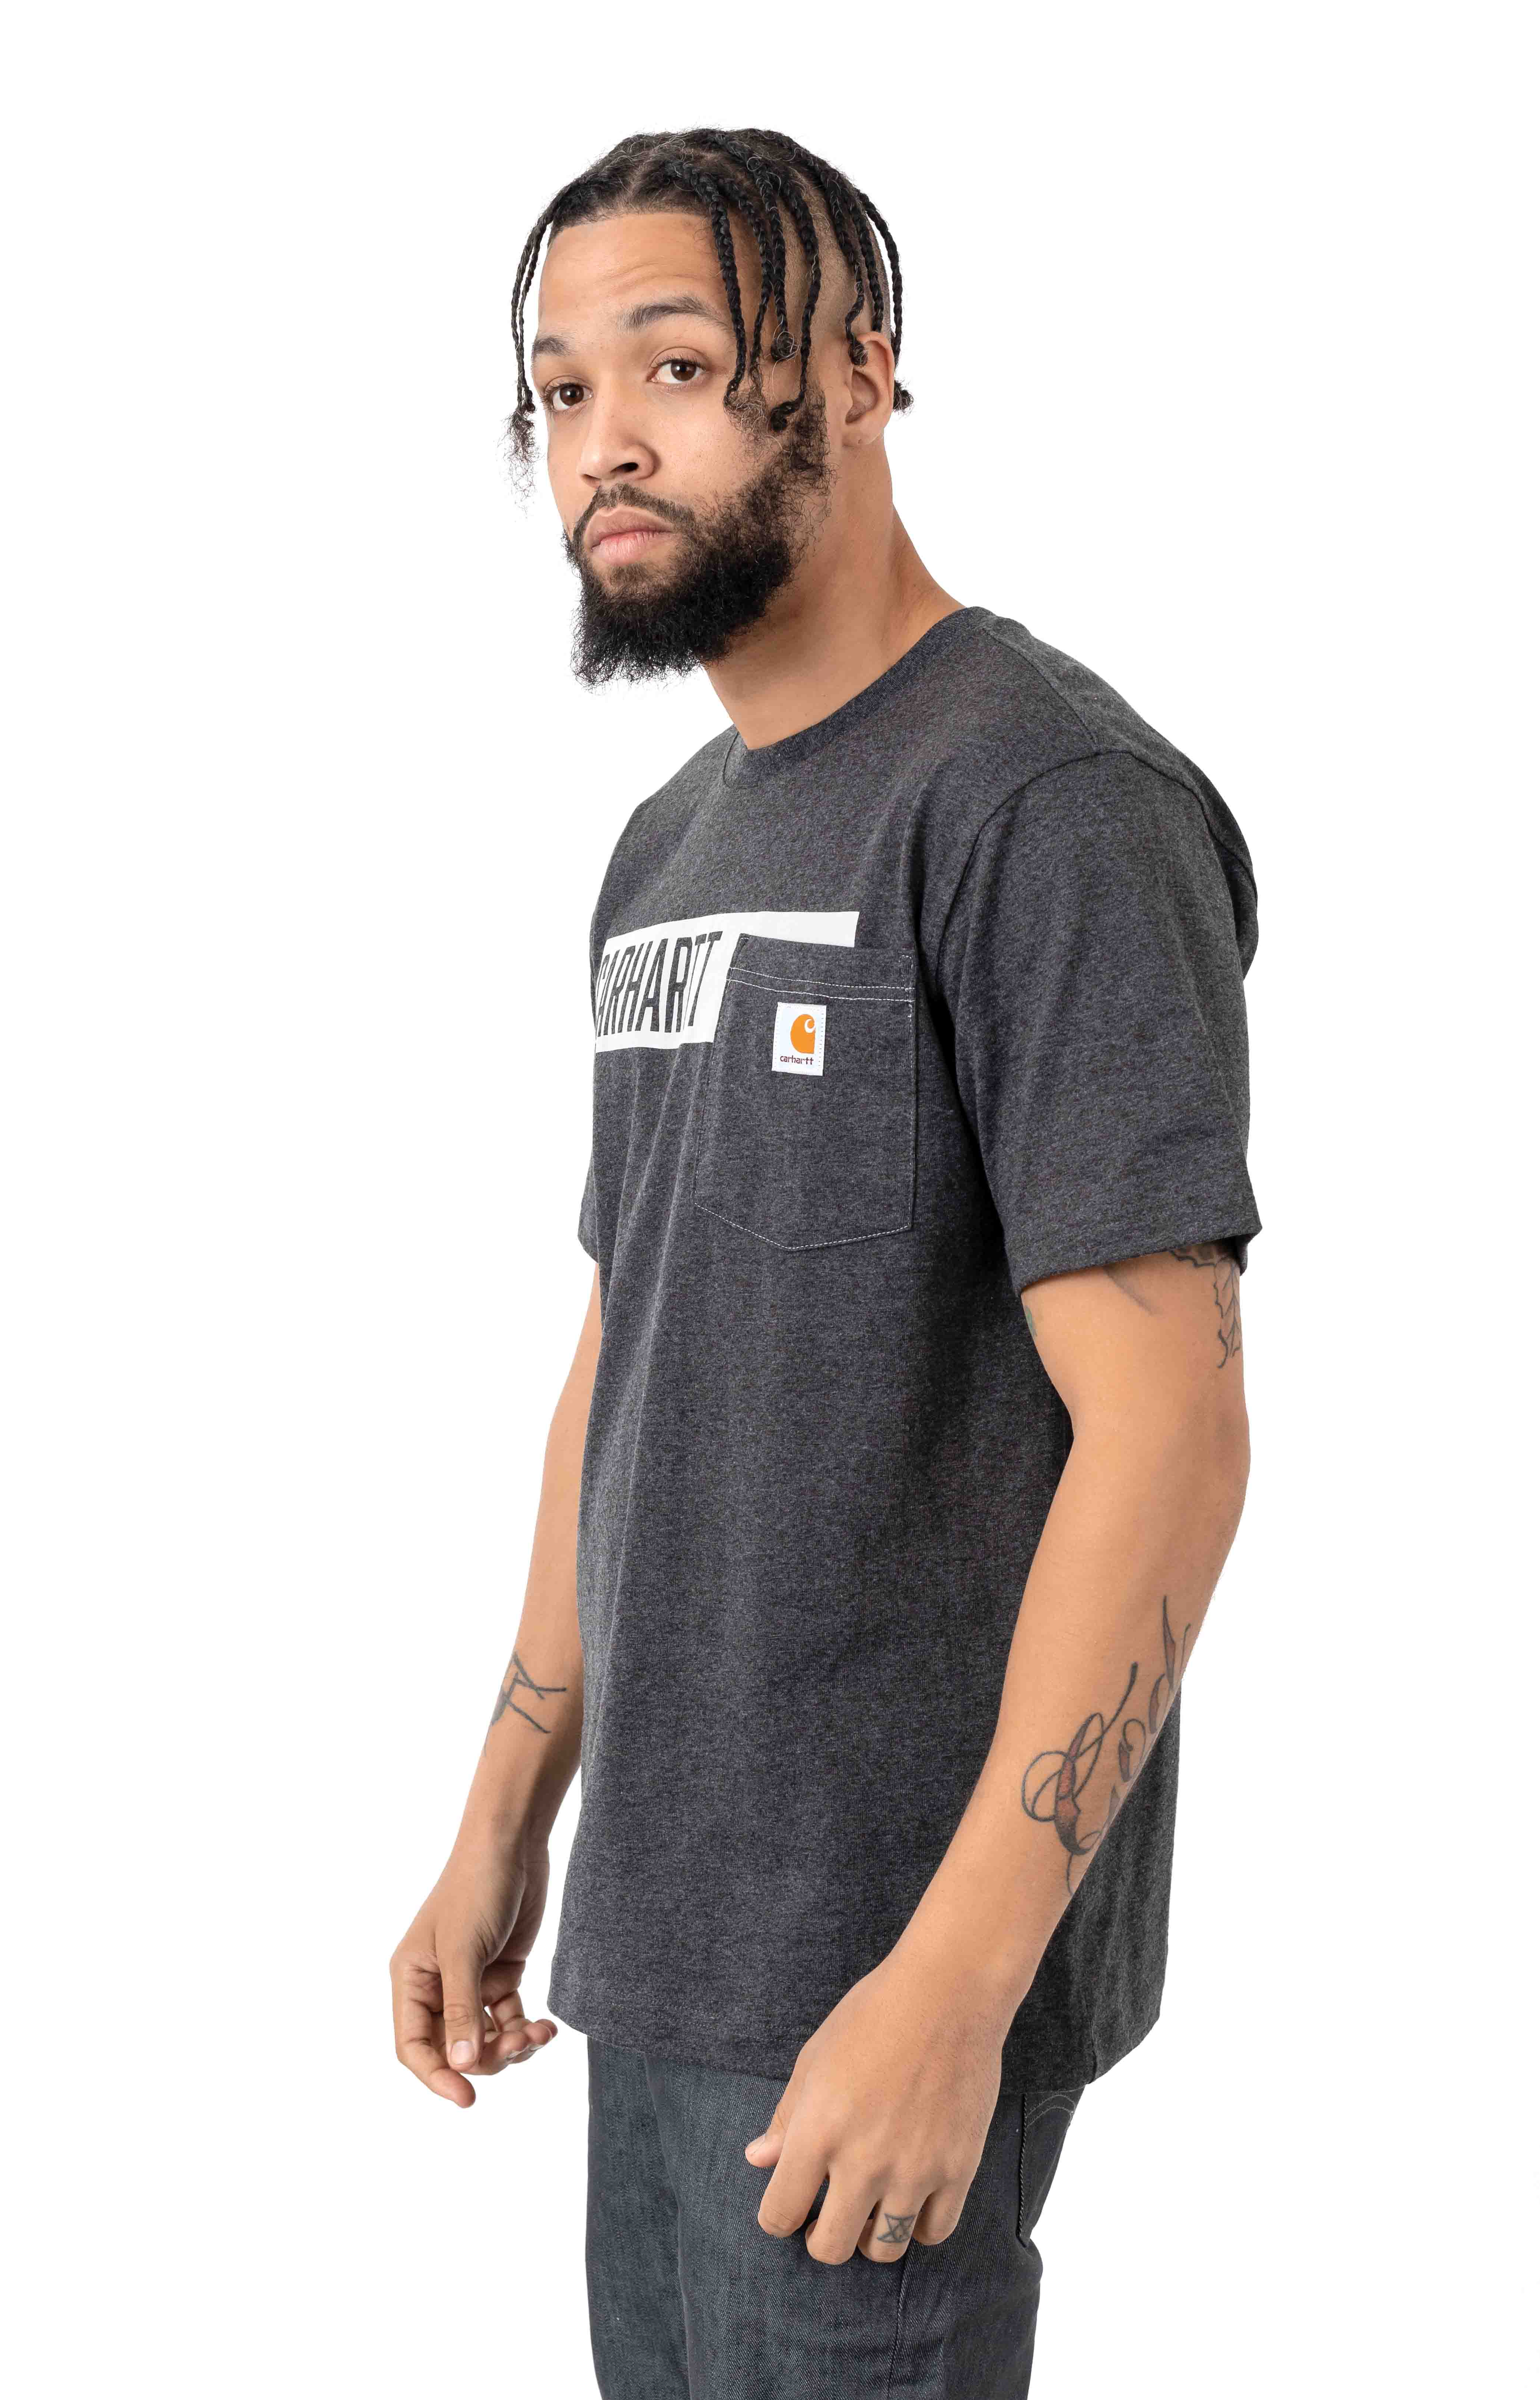 (104180) TK178-M Relaxed Fit HW Pocket Stripe Graphic T-Shirt - Carbon Heather  2